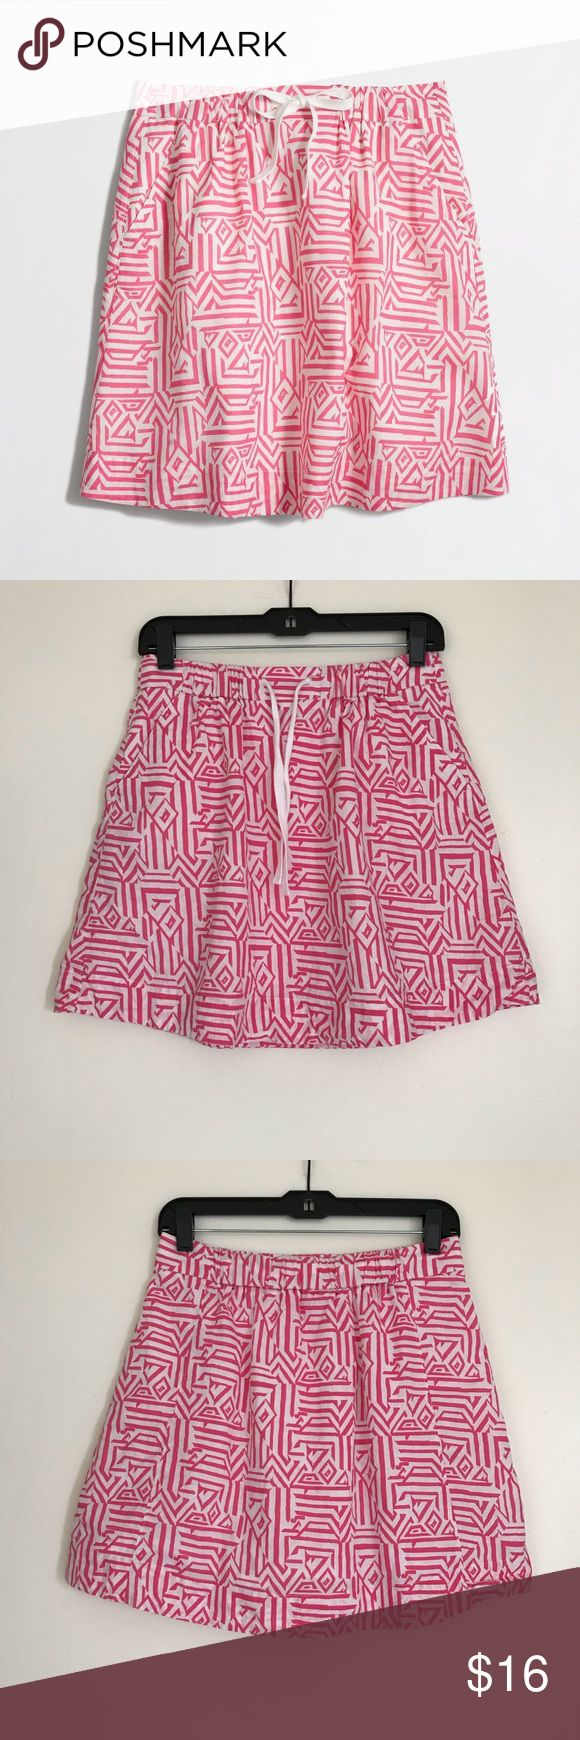 J. crew drawstring skirt in jacquard print - Sz 2 Love this skirt - screams spring/summer!! Reposhing - absolutely nothing wrong with it!! In excellent condition. No fading/stains/marks/pulls/pills/odor. J. Crew Skirts